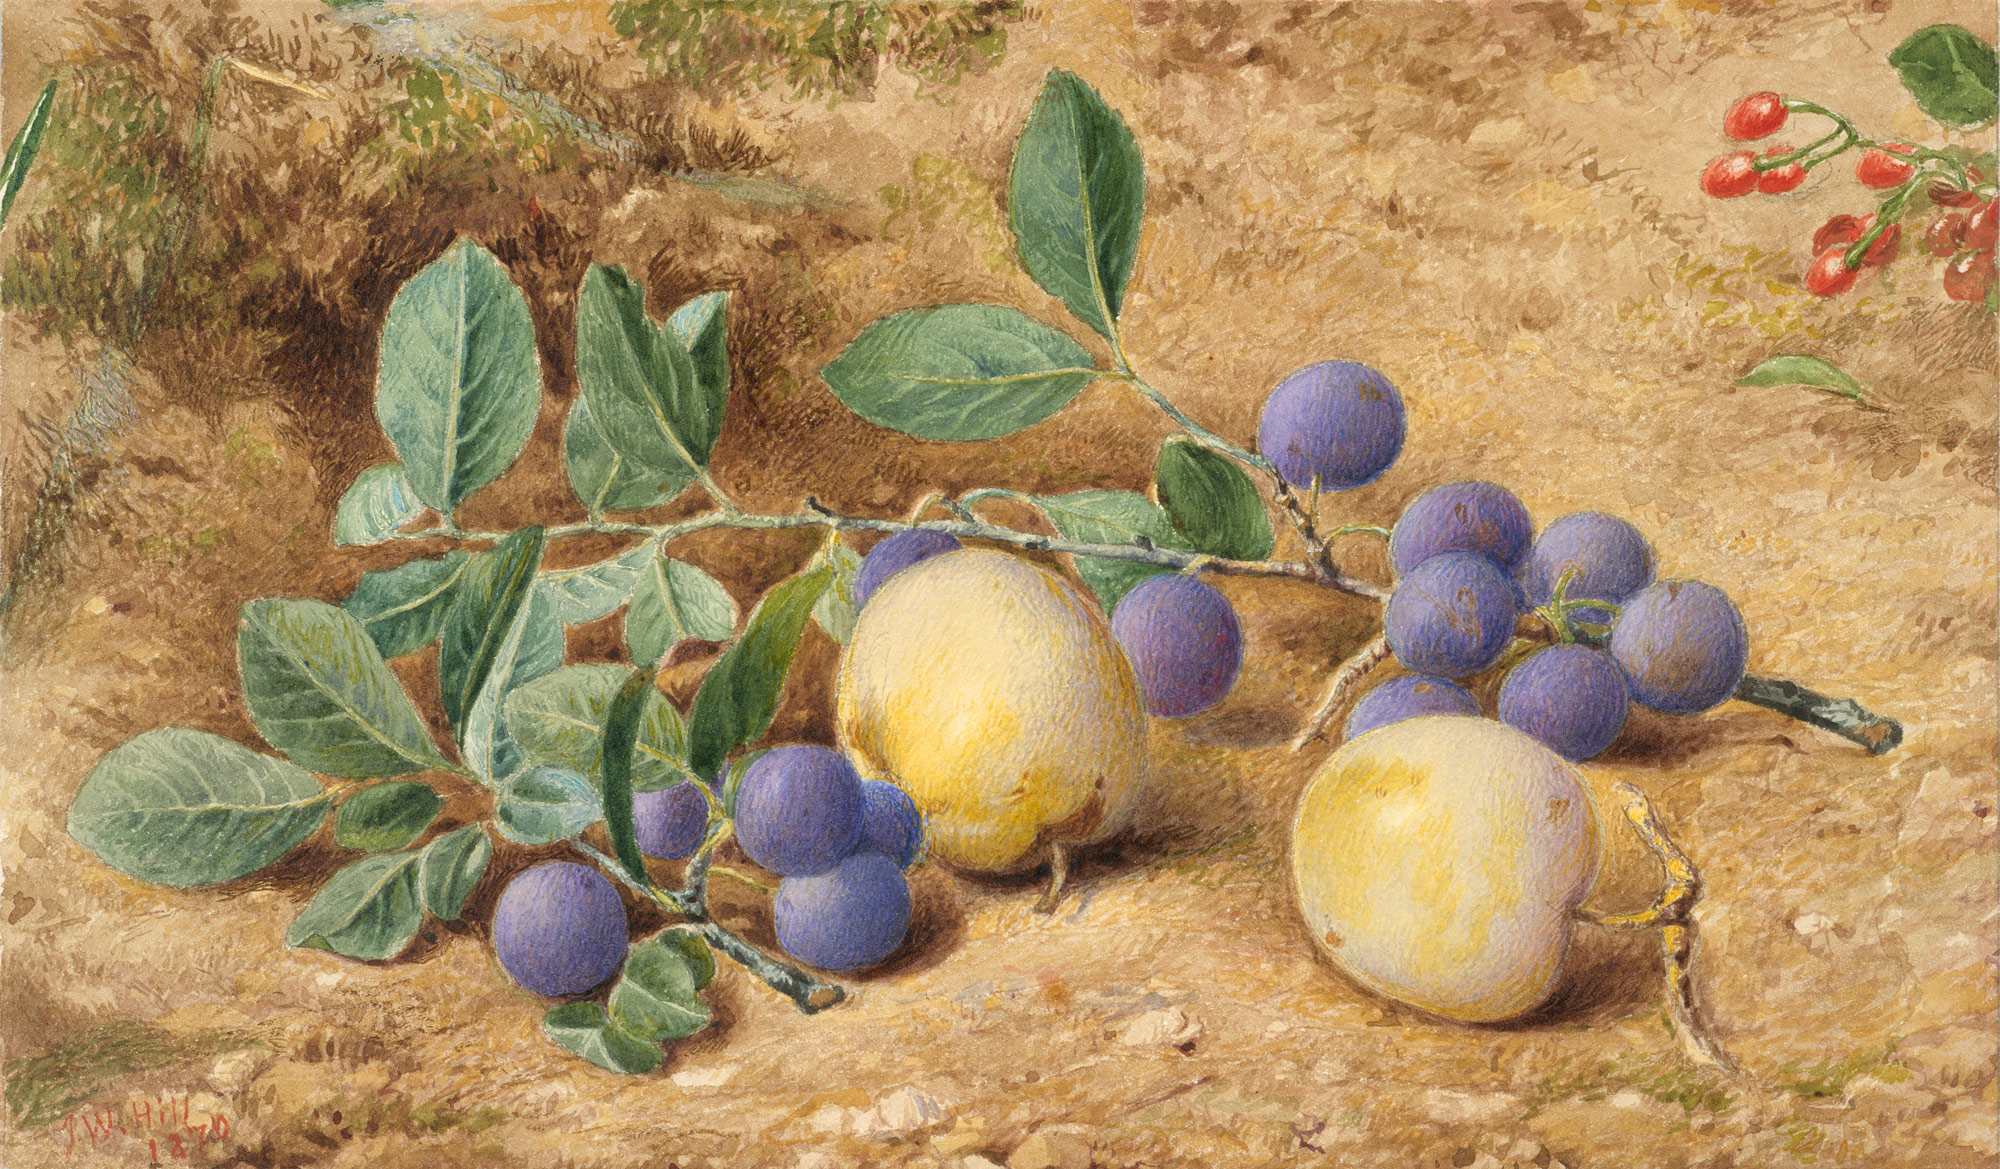 Plums | John William Hill | 82 9 1 | Work of Art | Heilbrunn